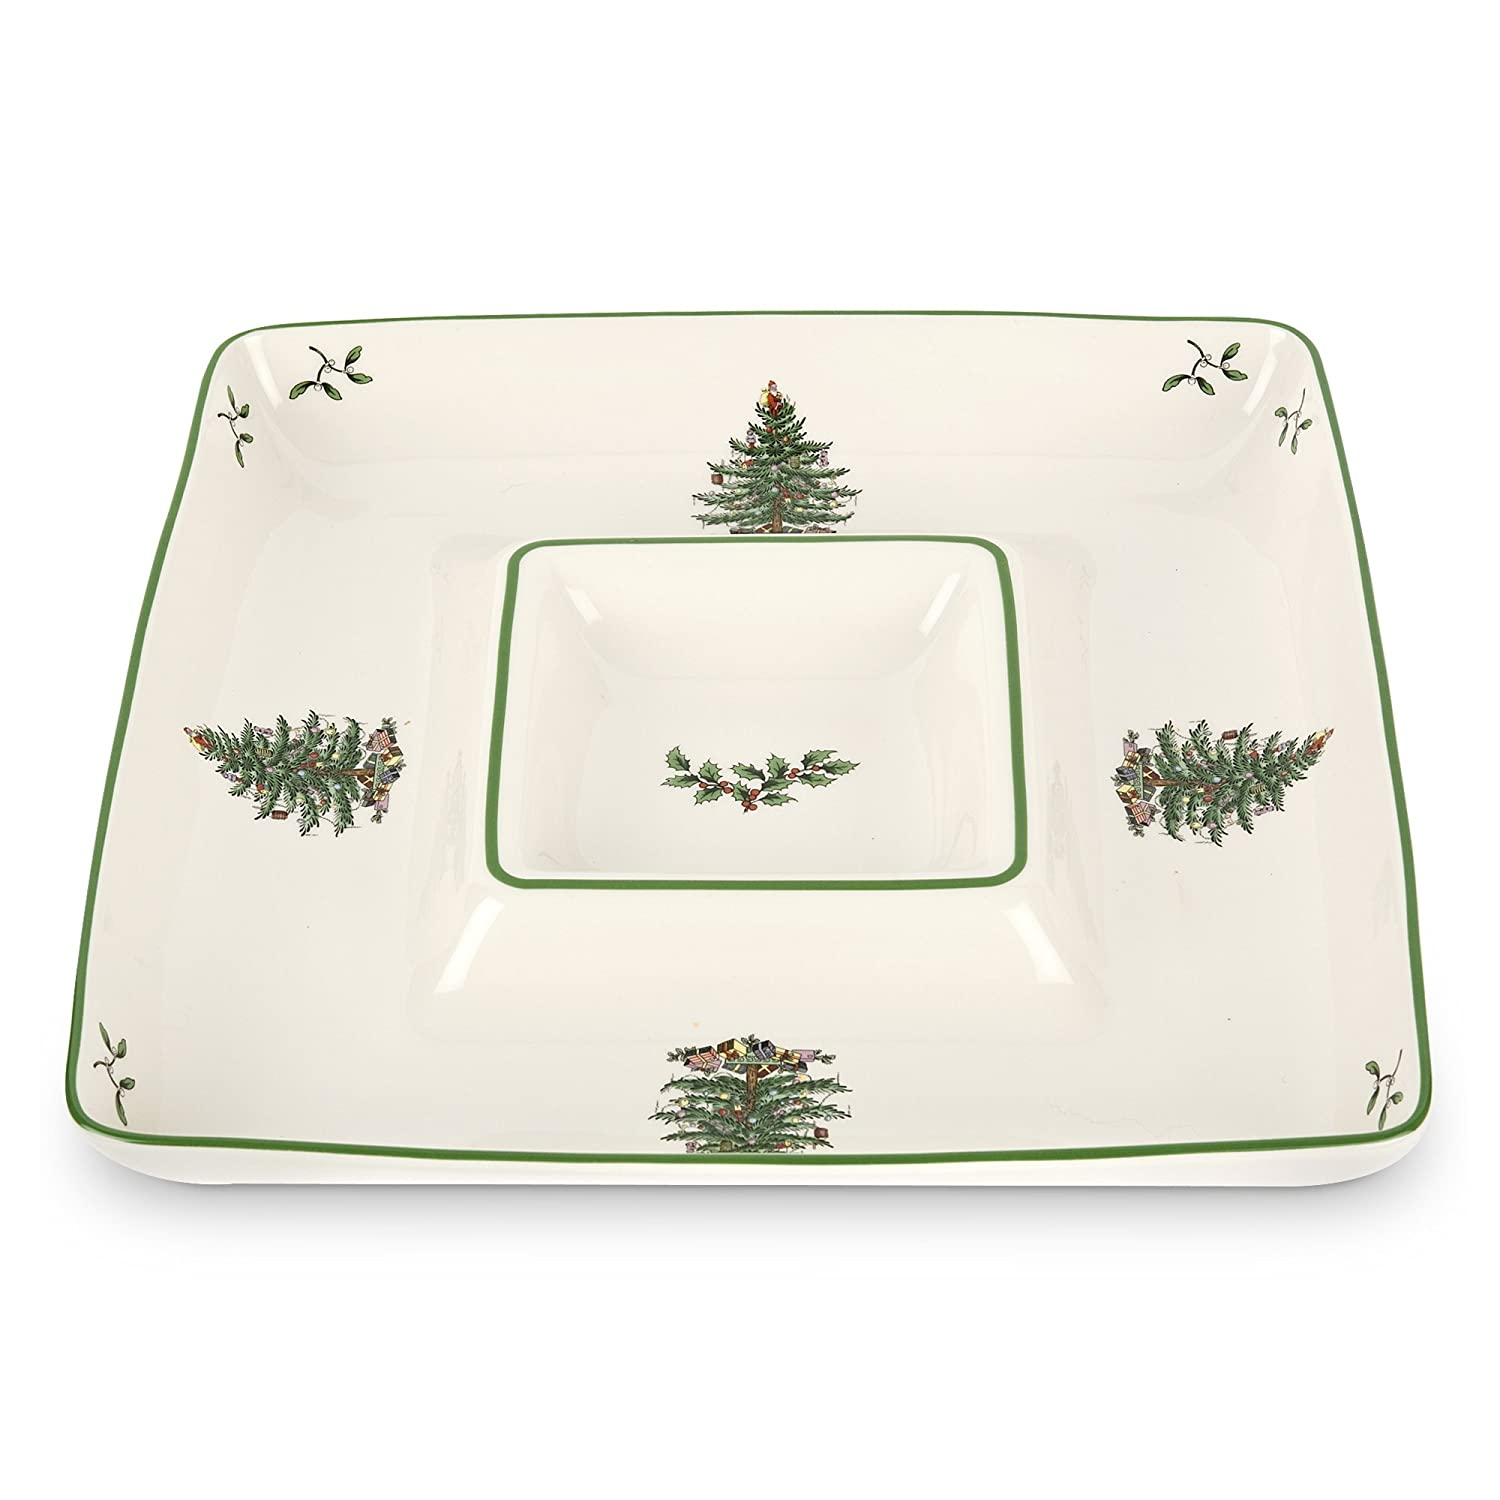 Spode Christmas Tree Square Chip and Dip